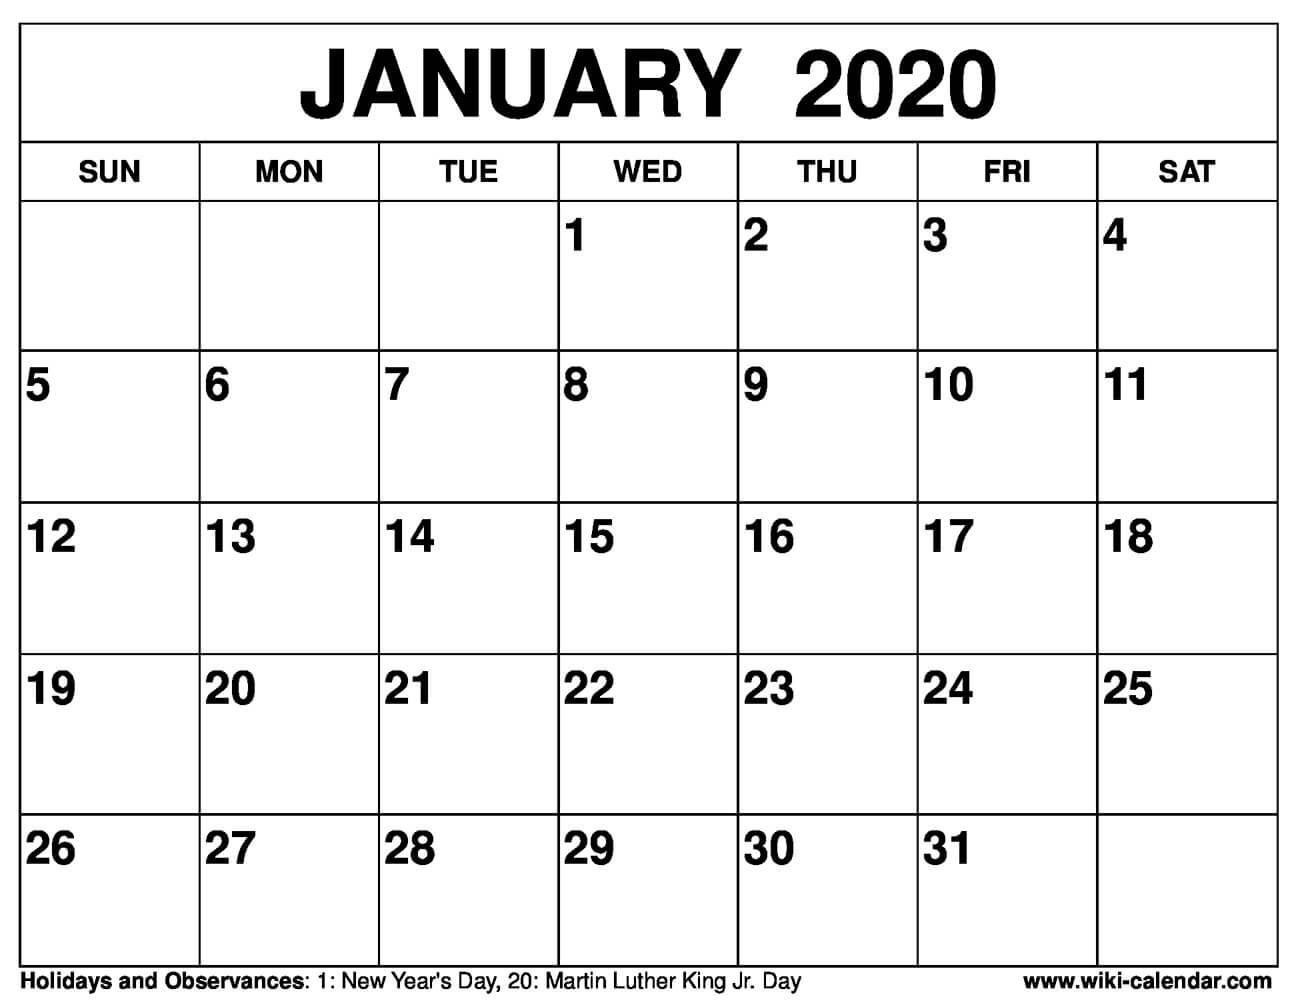 Blank January 2020 Calendar Printable Templates-January 2020 Calendar Wiki